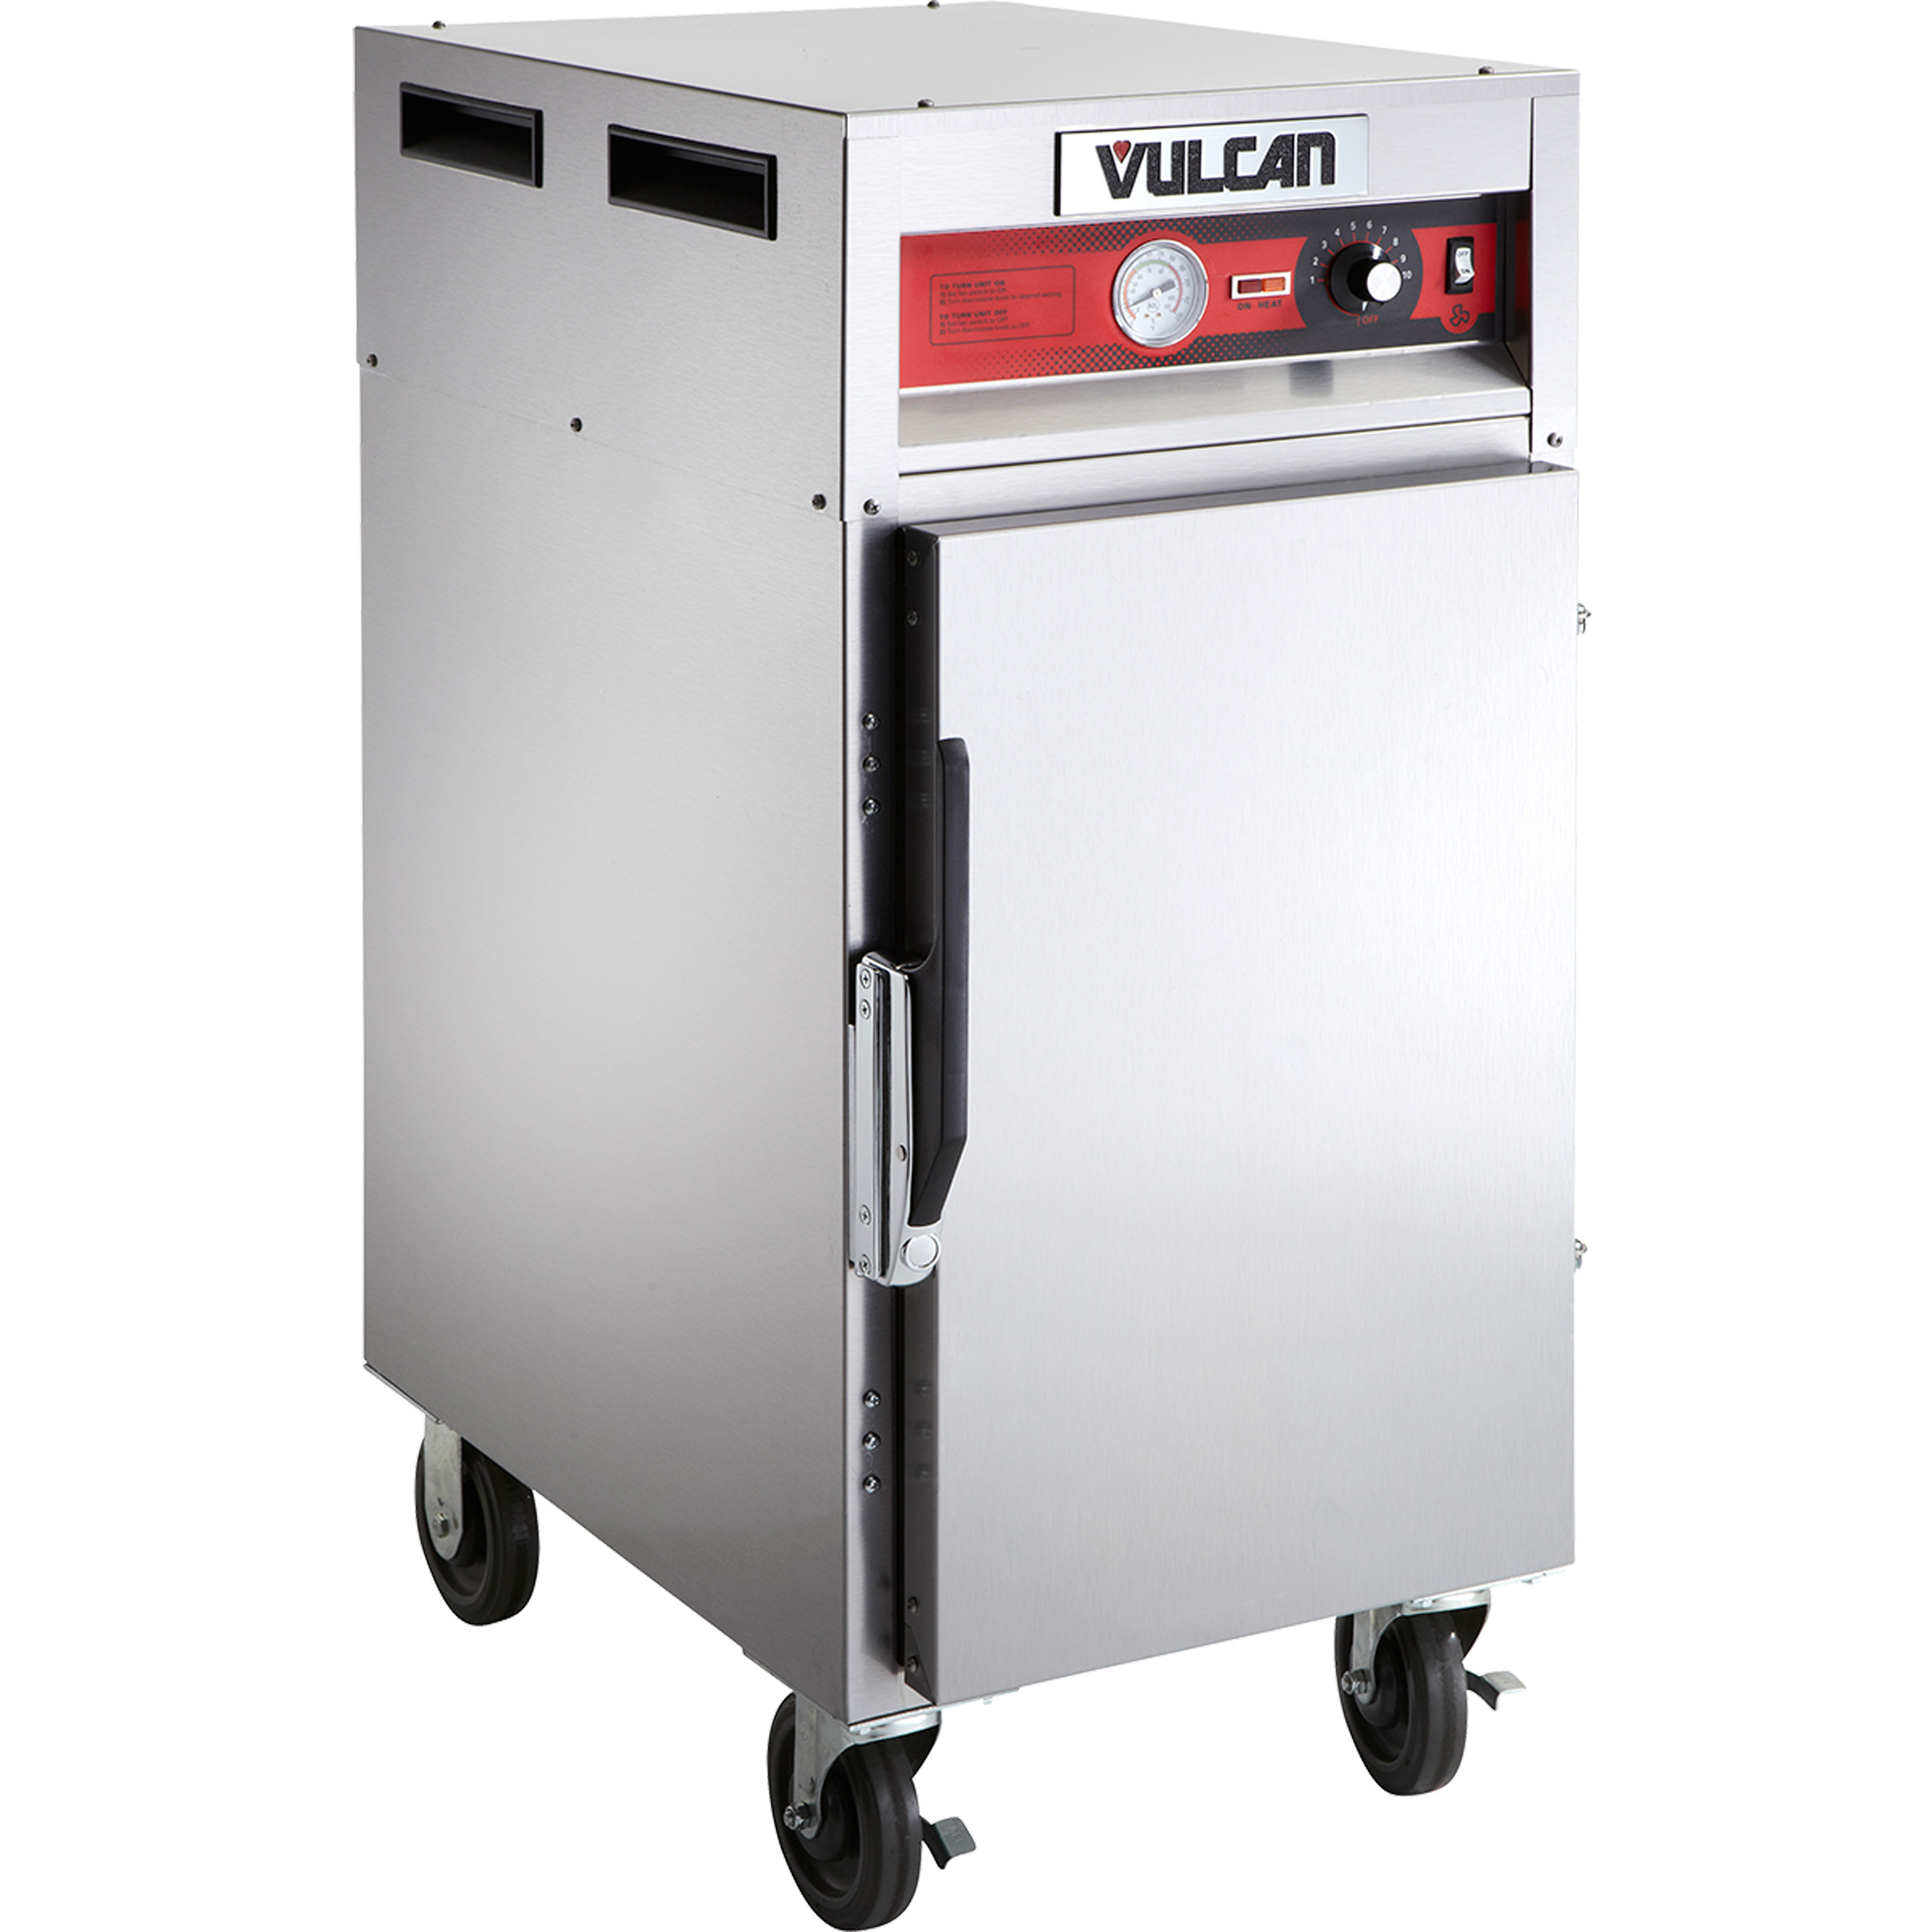 Vulcan VHP7 heated cabinet, mobile